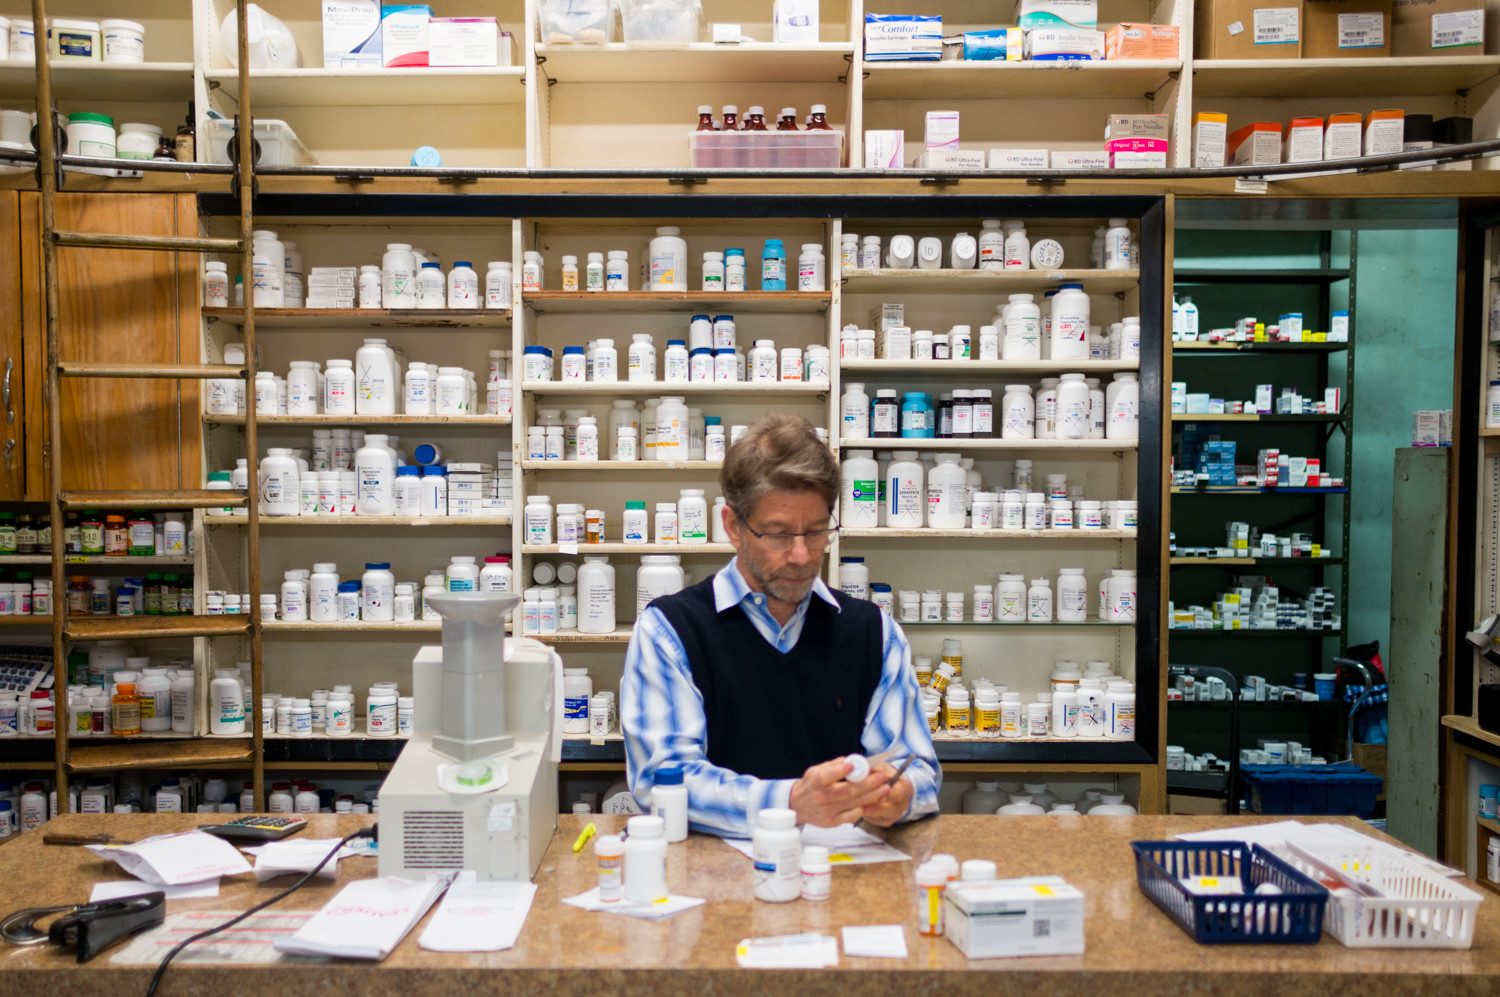 Robert Newman, a pharmacist at Regal Pharmacy, fills a customer's prescription. His internet and telephone service have been cutting out, and Verizon has yet to resolve the problem.